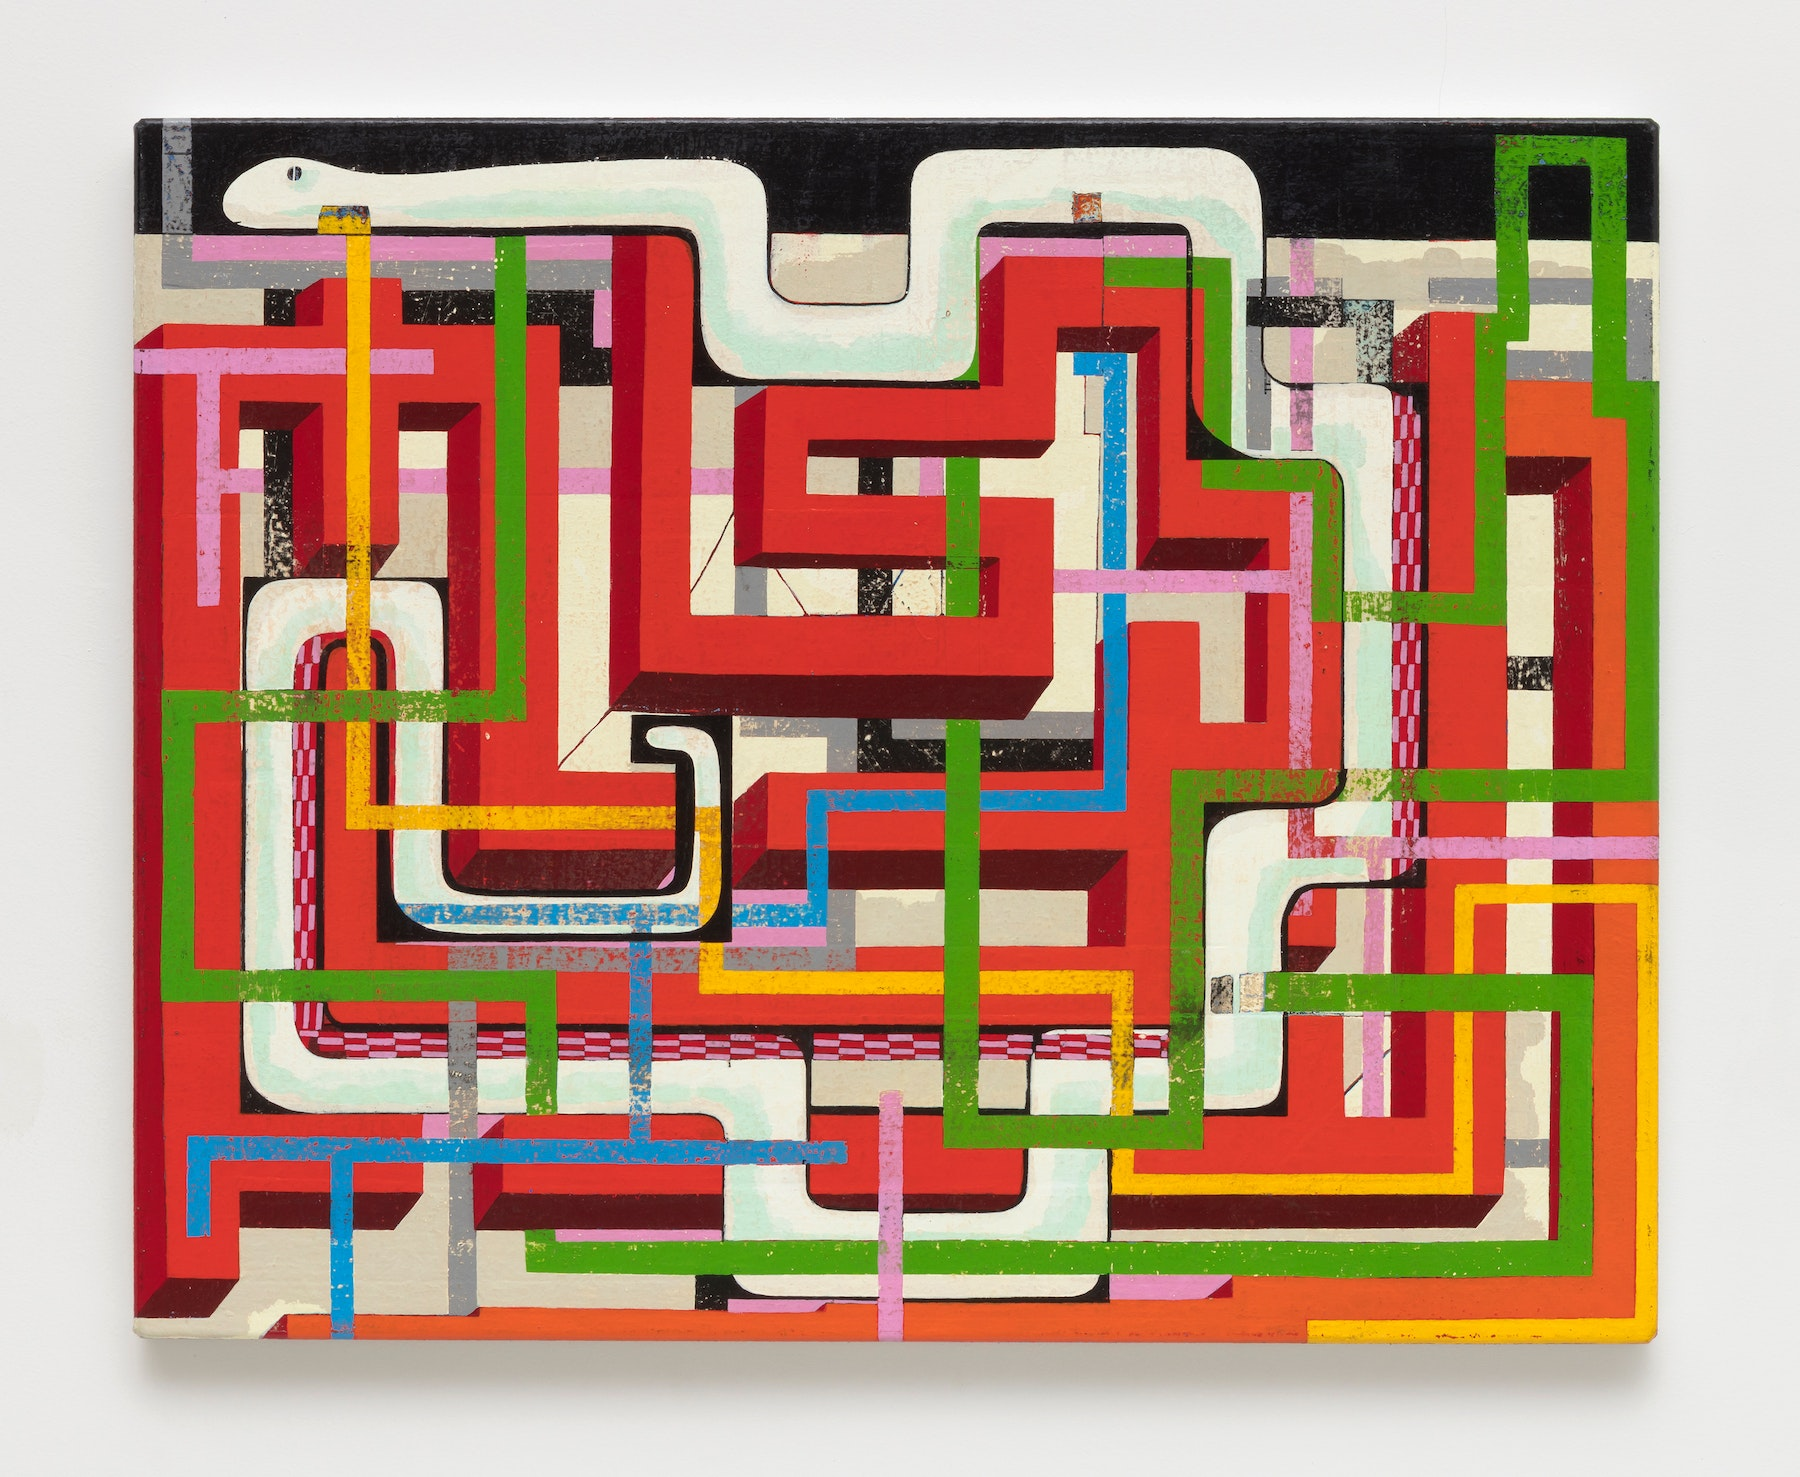 """Brad Eberhard """"New Neural Pathway,"""" 2020 Oil on canvas 24 x 30"""" [HxW] (60.96 x 76.2 cm) Inventory #EBE166 Courtesy of the artist and Vielmetter Los Angeles Photo credit: Robert Wedemeyer"""